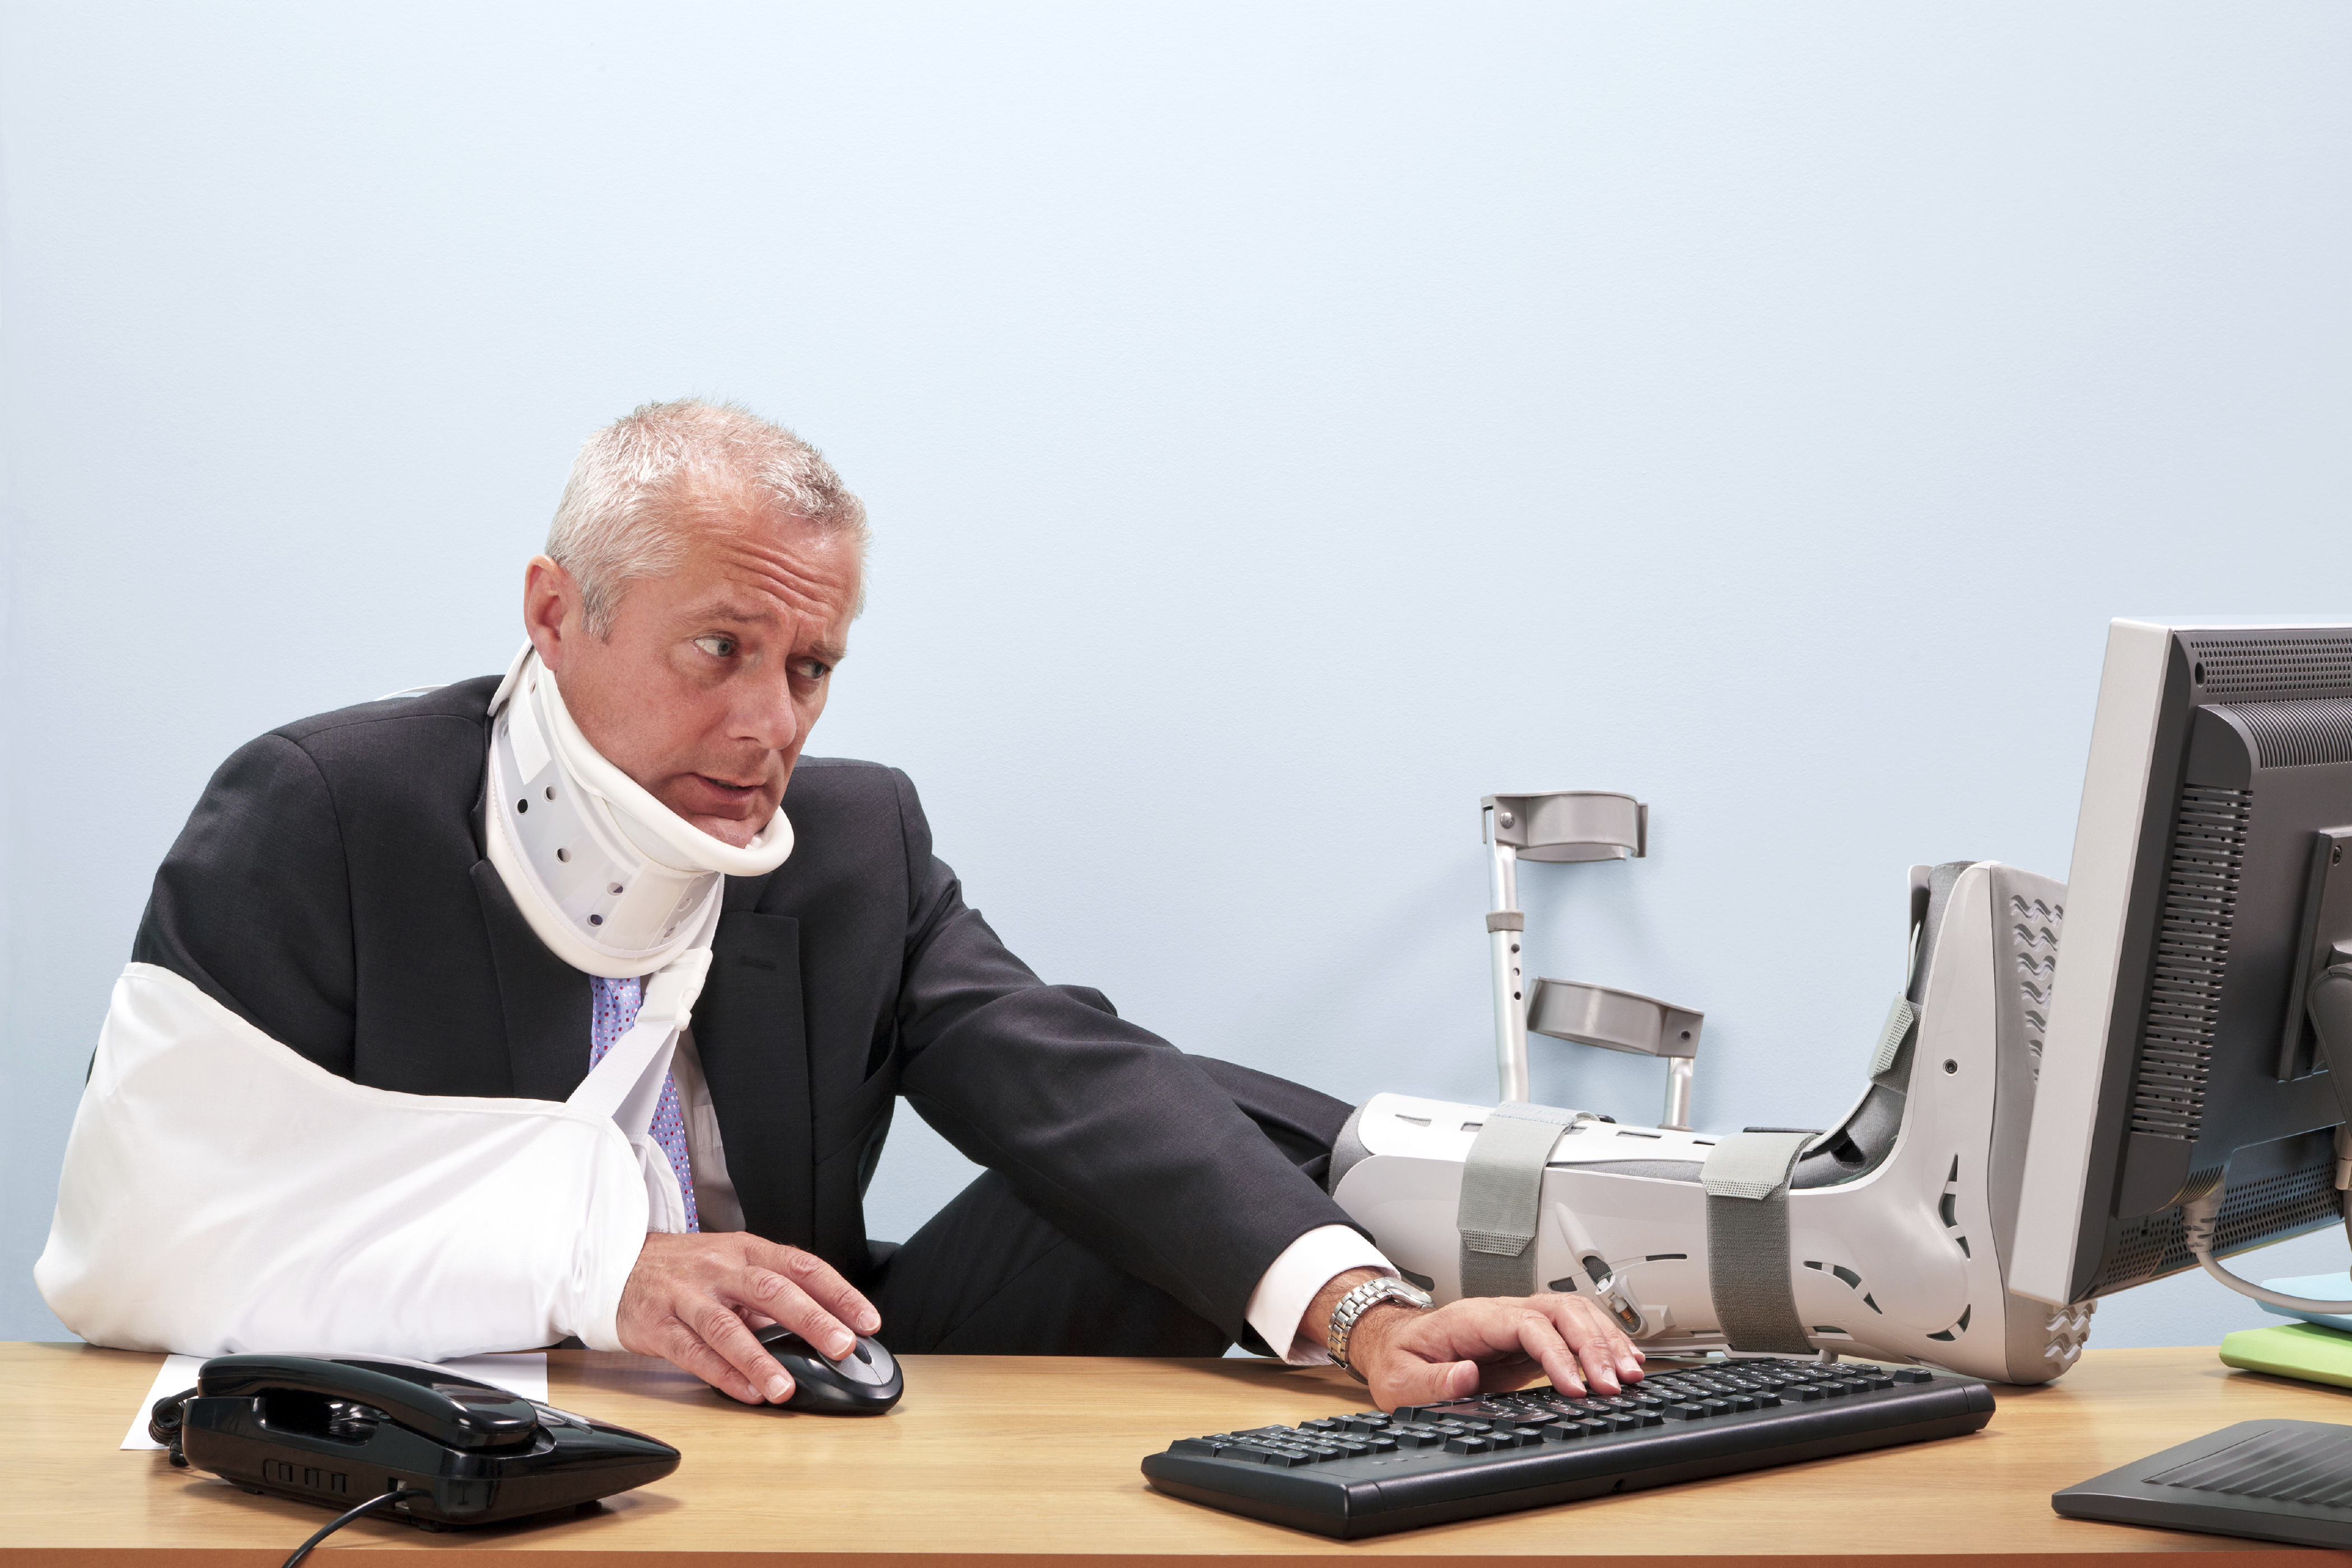 Top 4 Most Common Accidents That May Require a Lawyer - pissd com